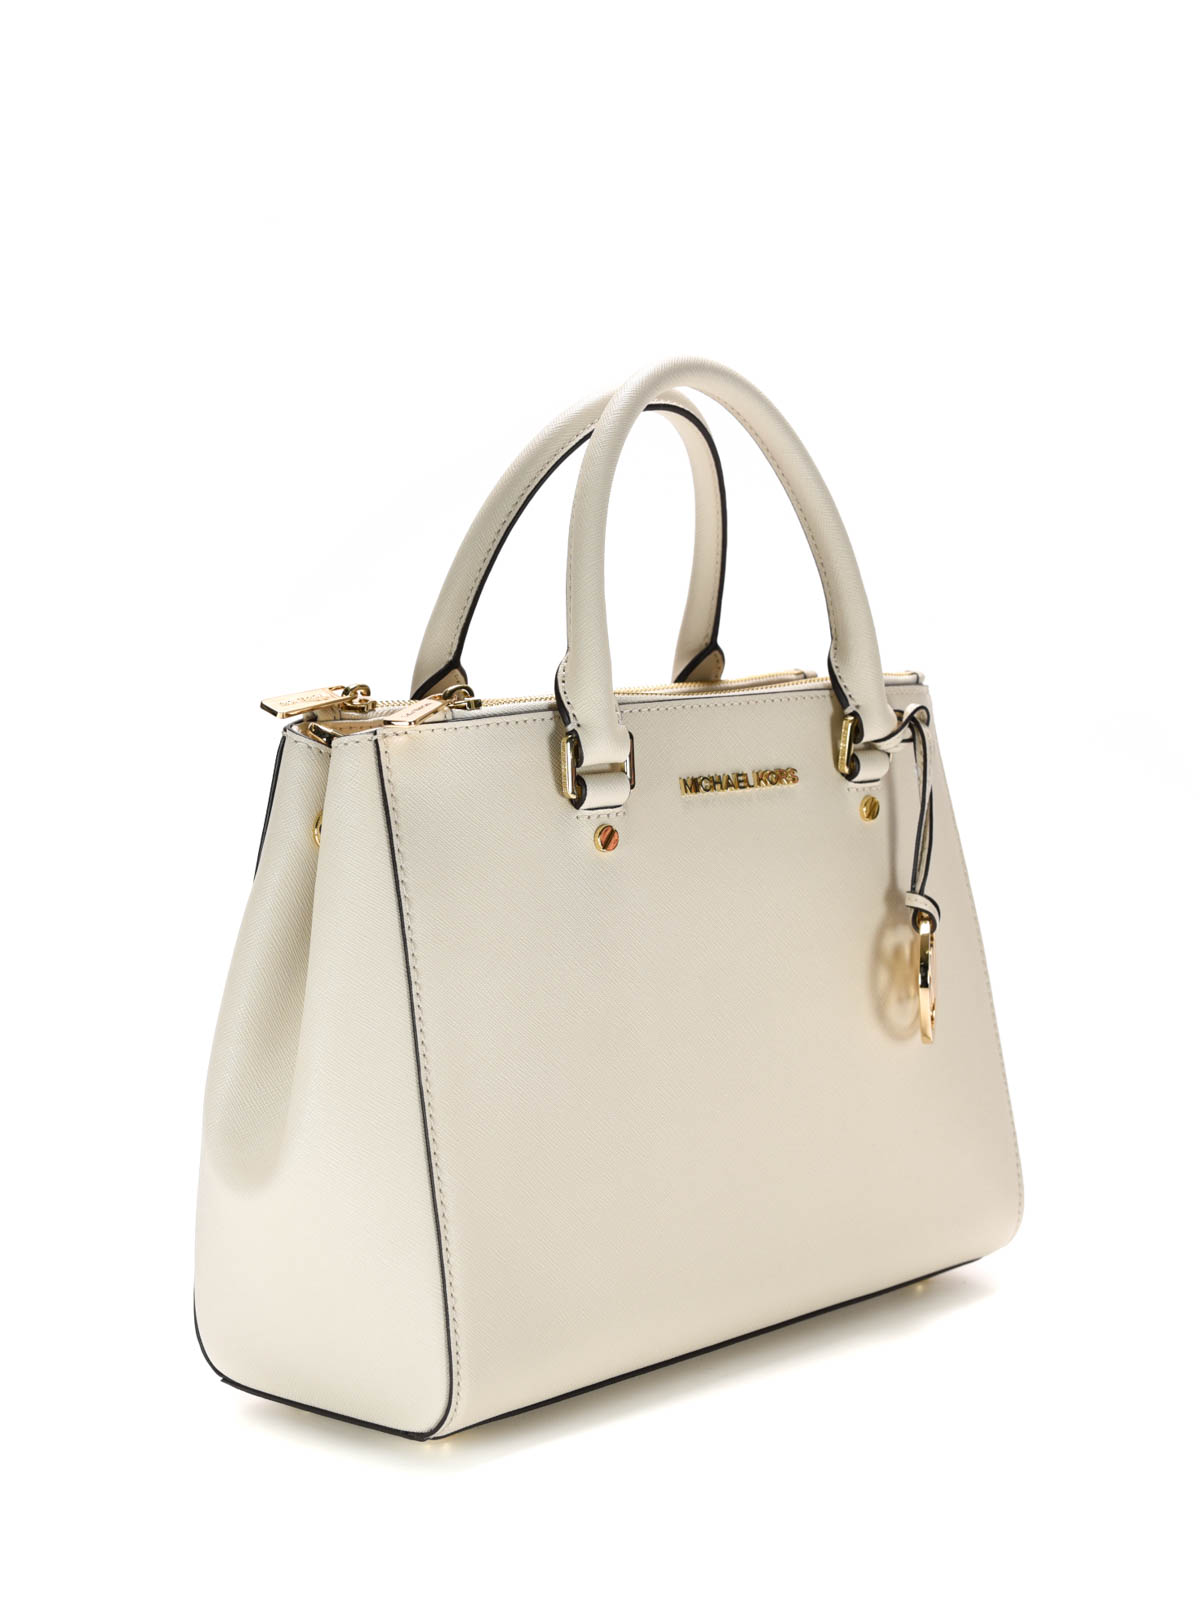 d94191094f32 MICHAEL KORS: totes bags online - Sutton Saffiano leather large tote